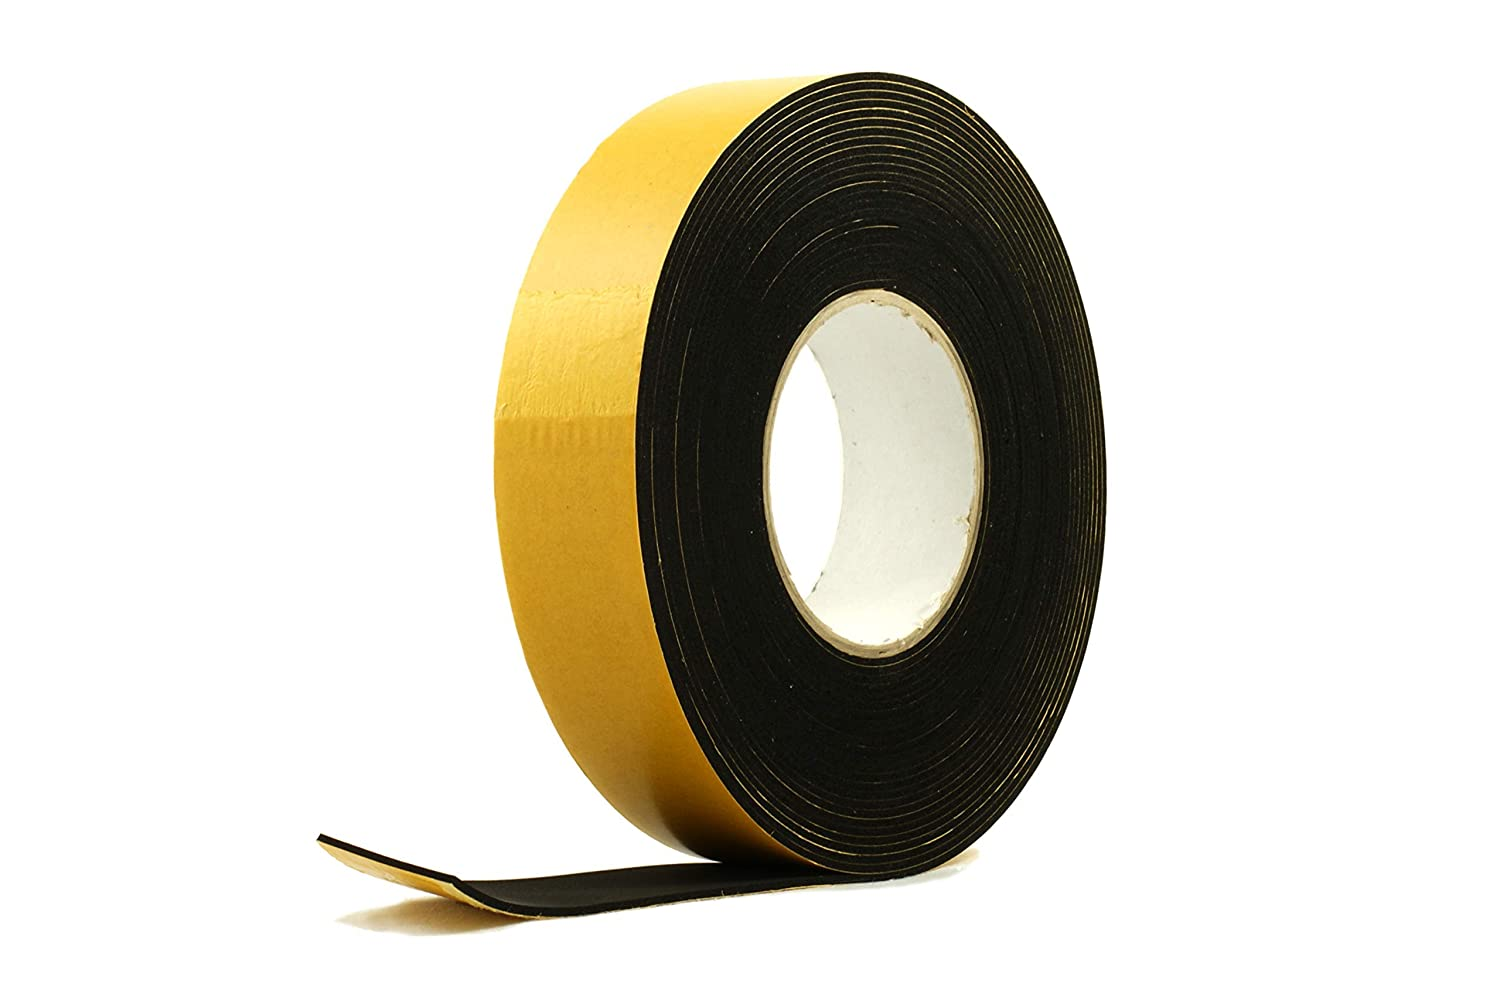 Solid Neoprene Black Rubber Strip 5//8 Wide x 5//64 Thick x 16 feet Long